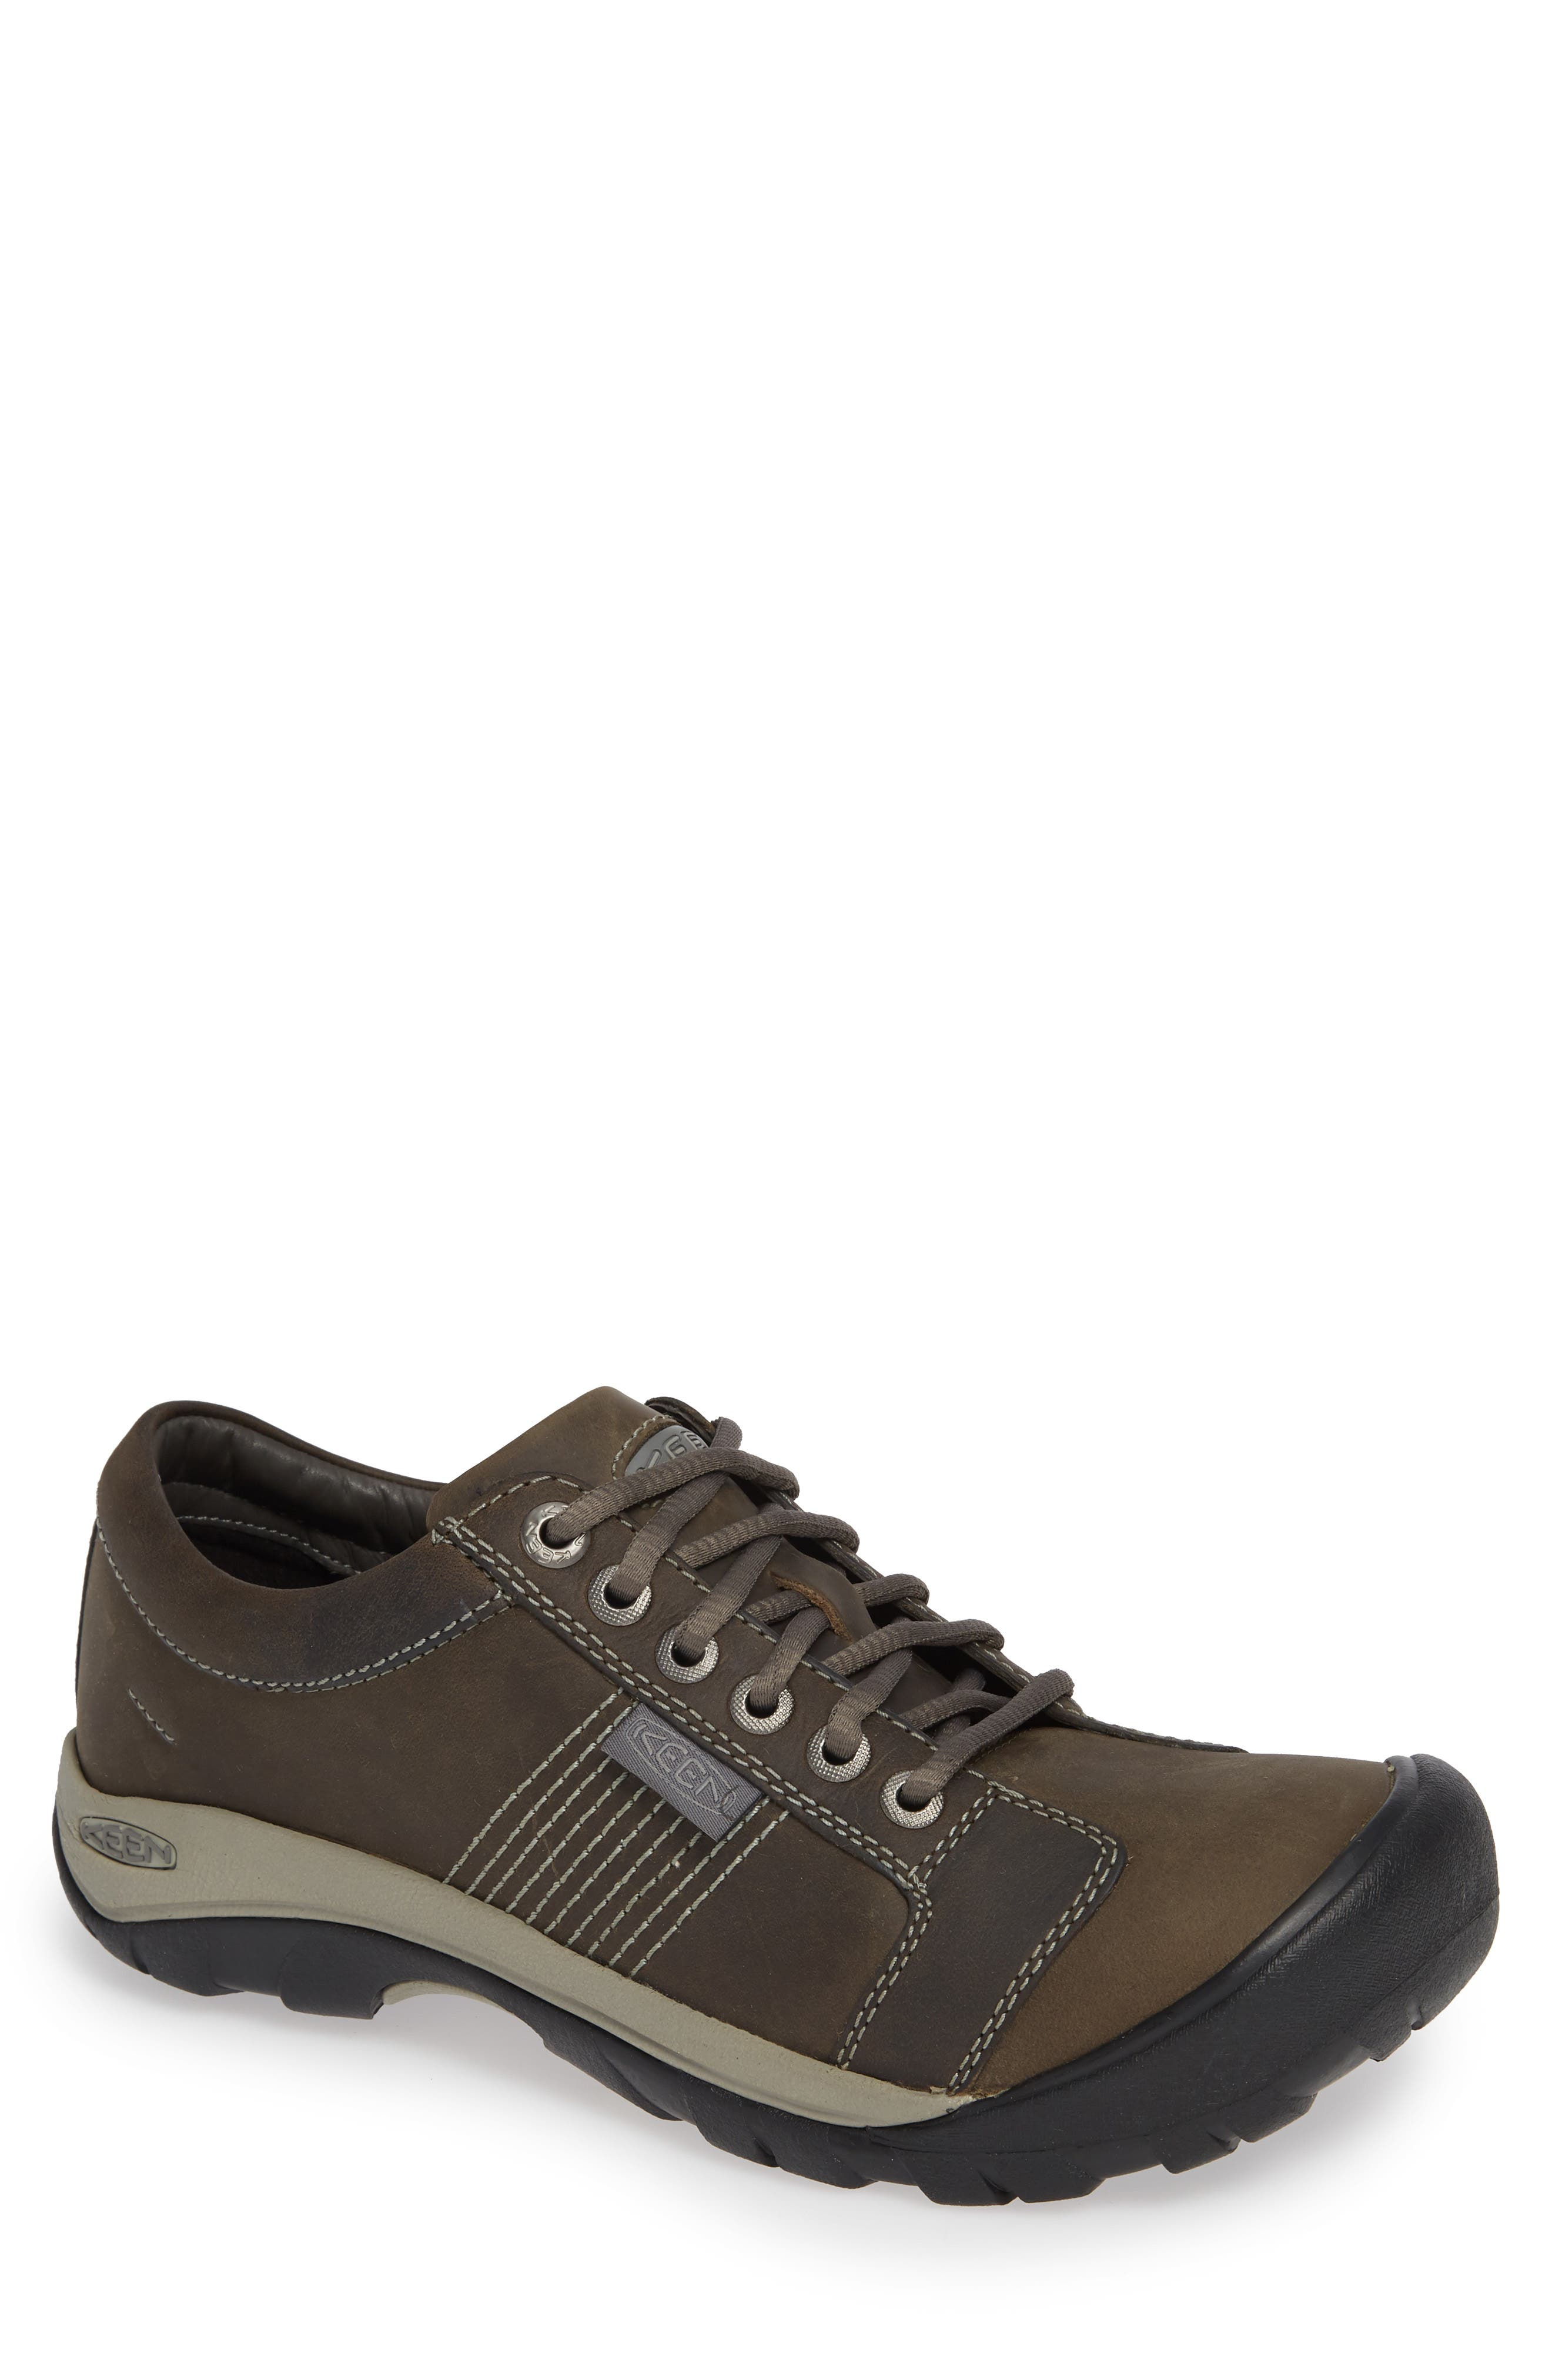 'Austin' Sneaker,                         Main,                         color, GARGOYLE/ NEUTRAL GRAY